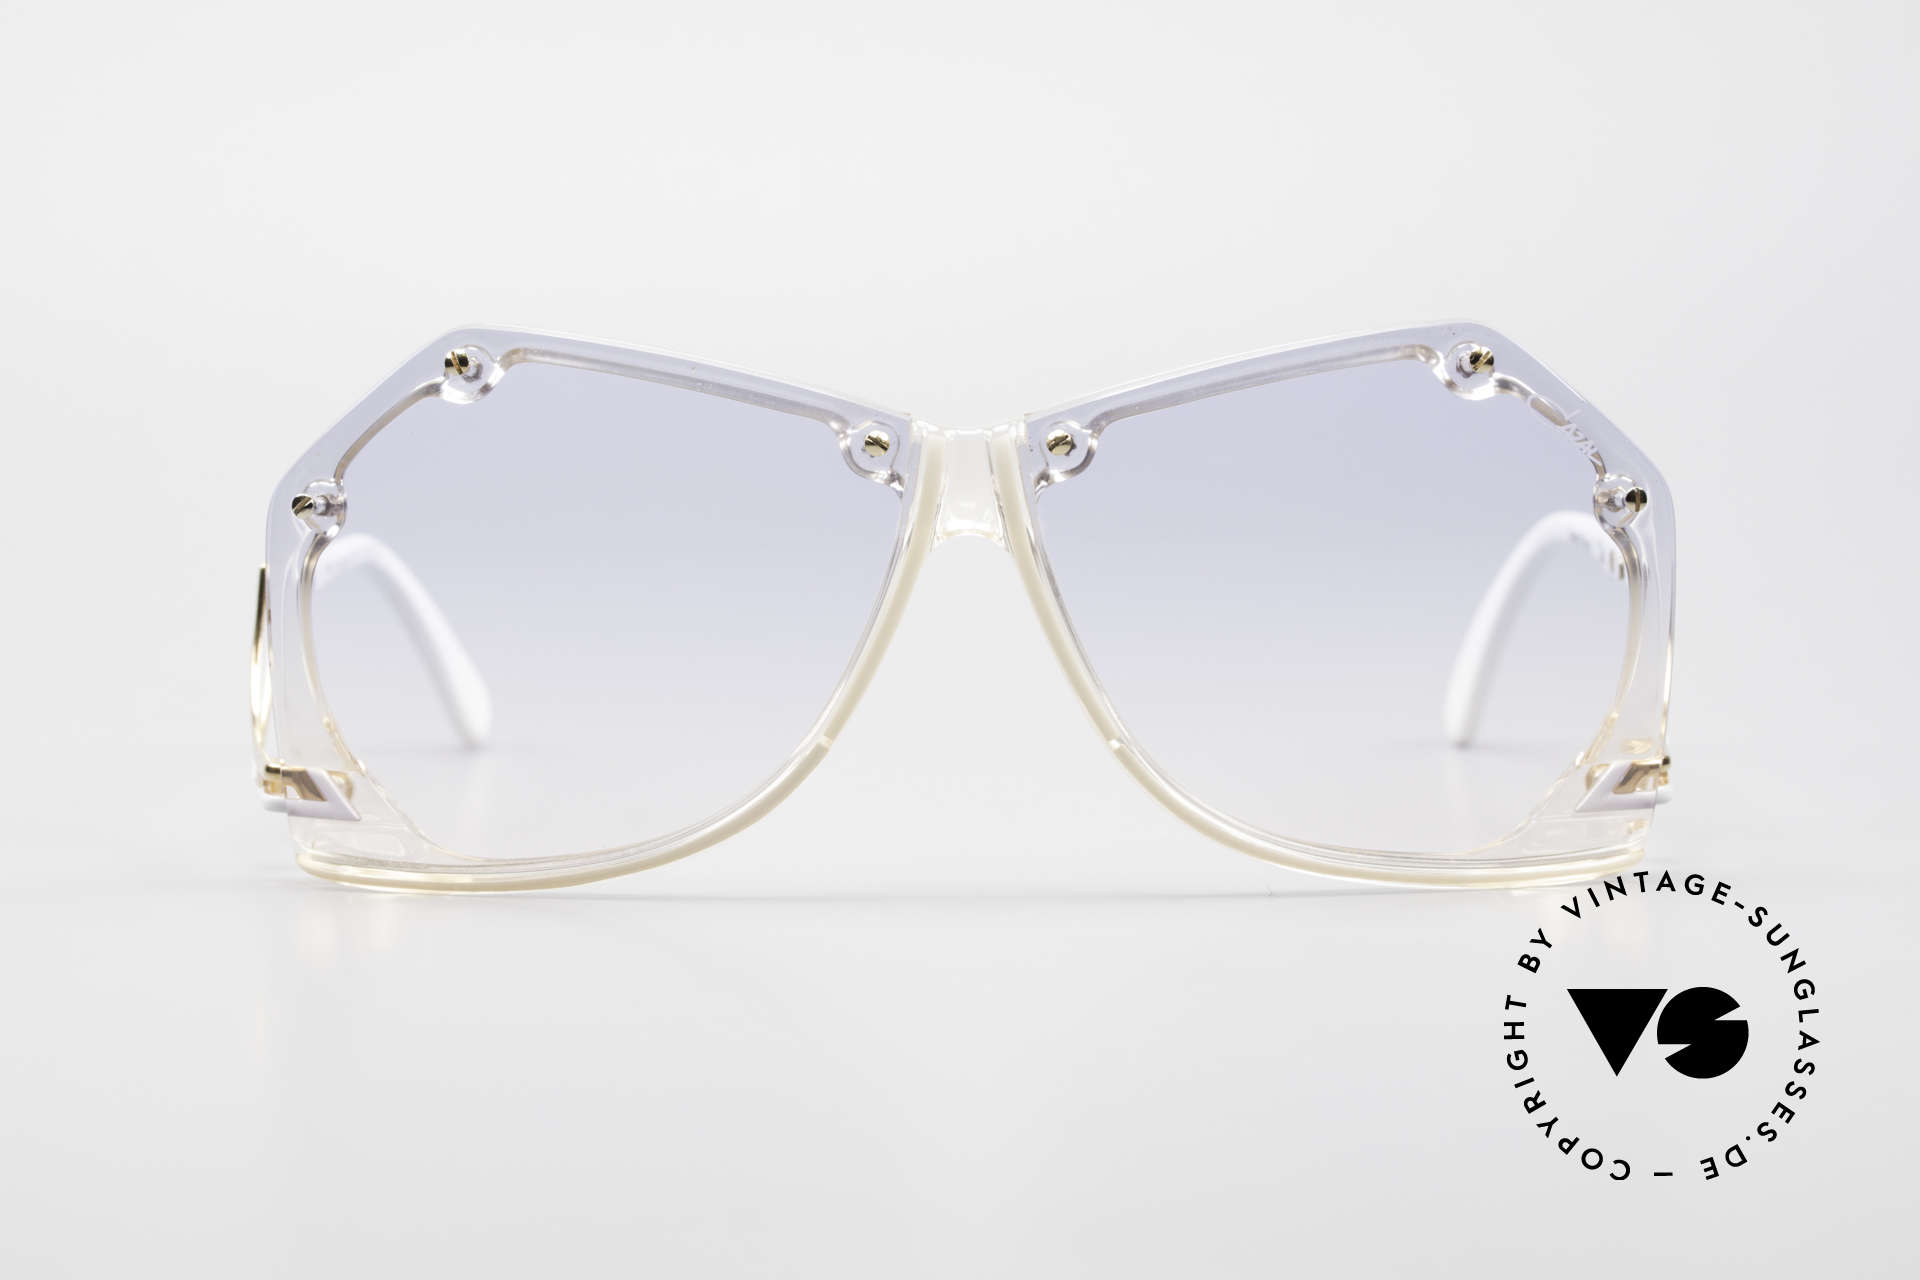 Cazal 860 The Most Beautiful 80's Cazal, the most beautiful ladies sunglasses by Cazal, Made for Women